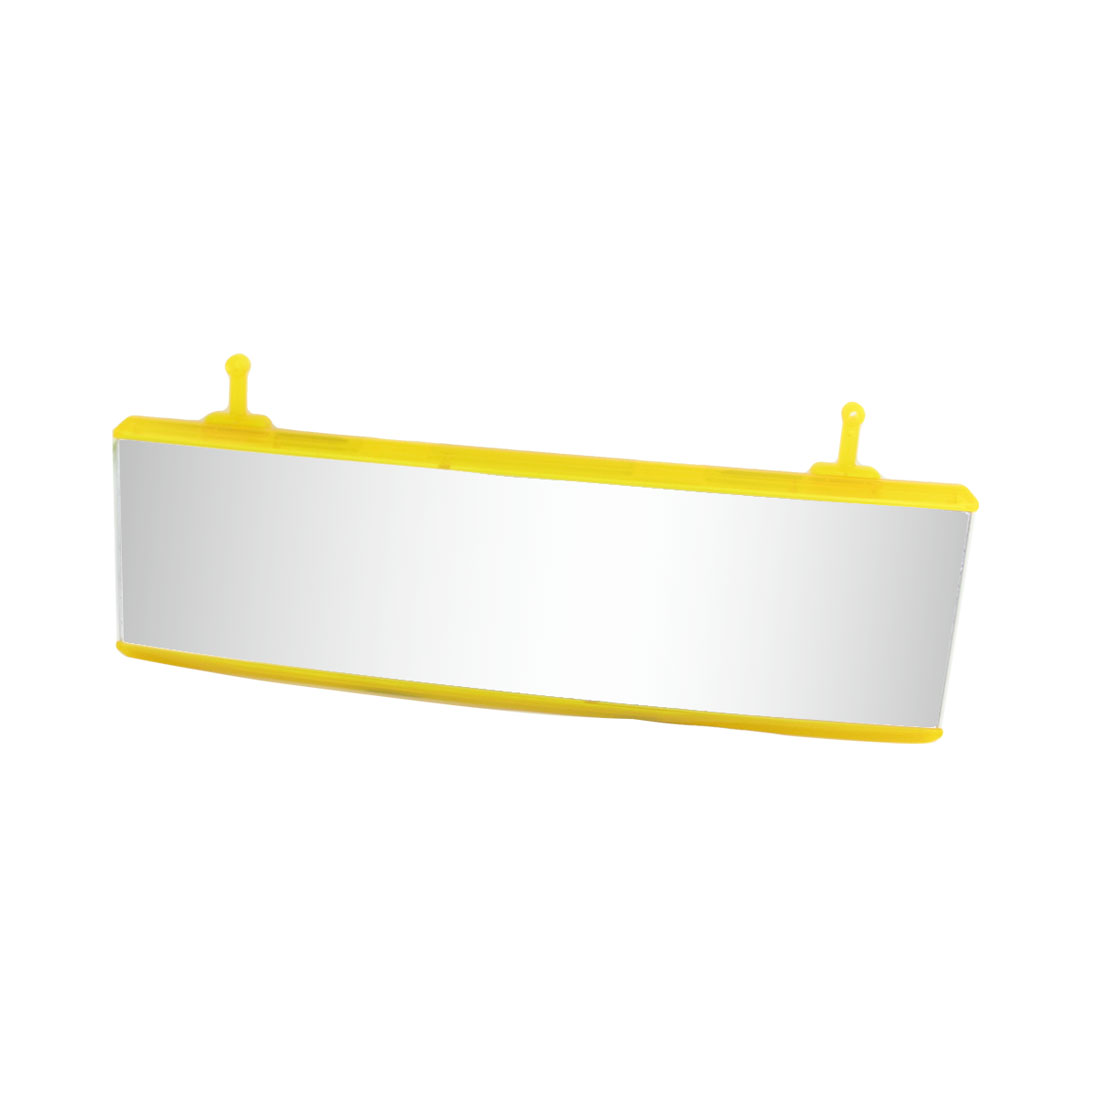 JDM 250mm Wide Curved Interior Clip On Rear View Mirror Universal Yellow for Car